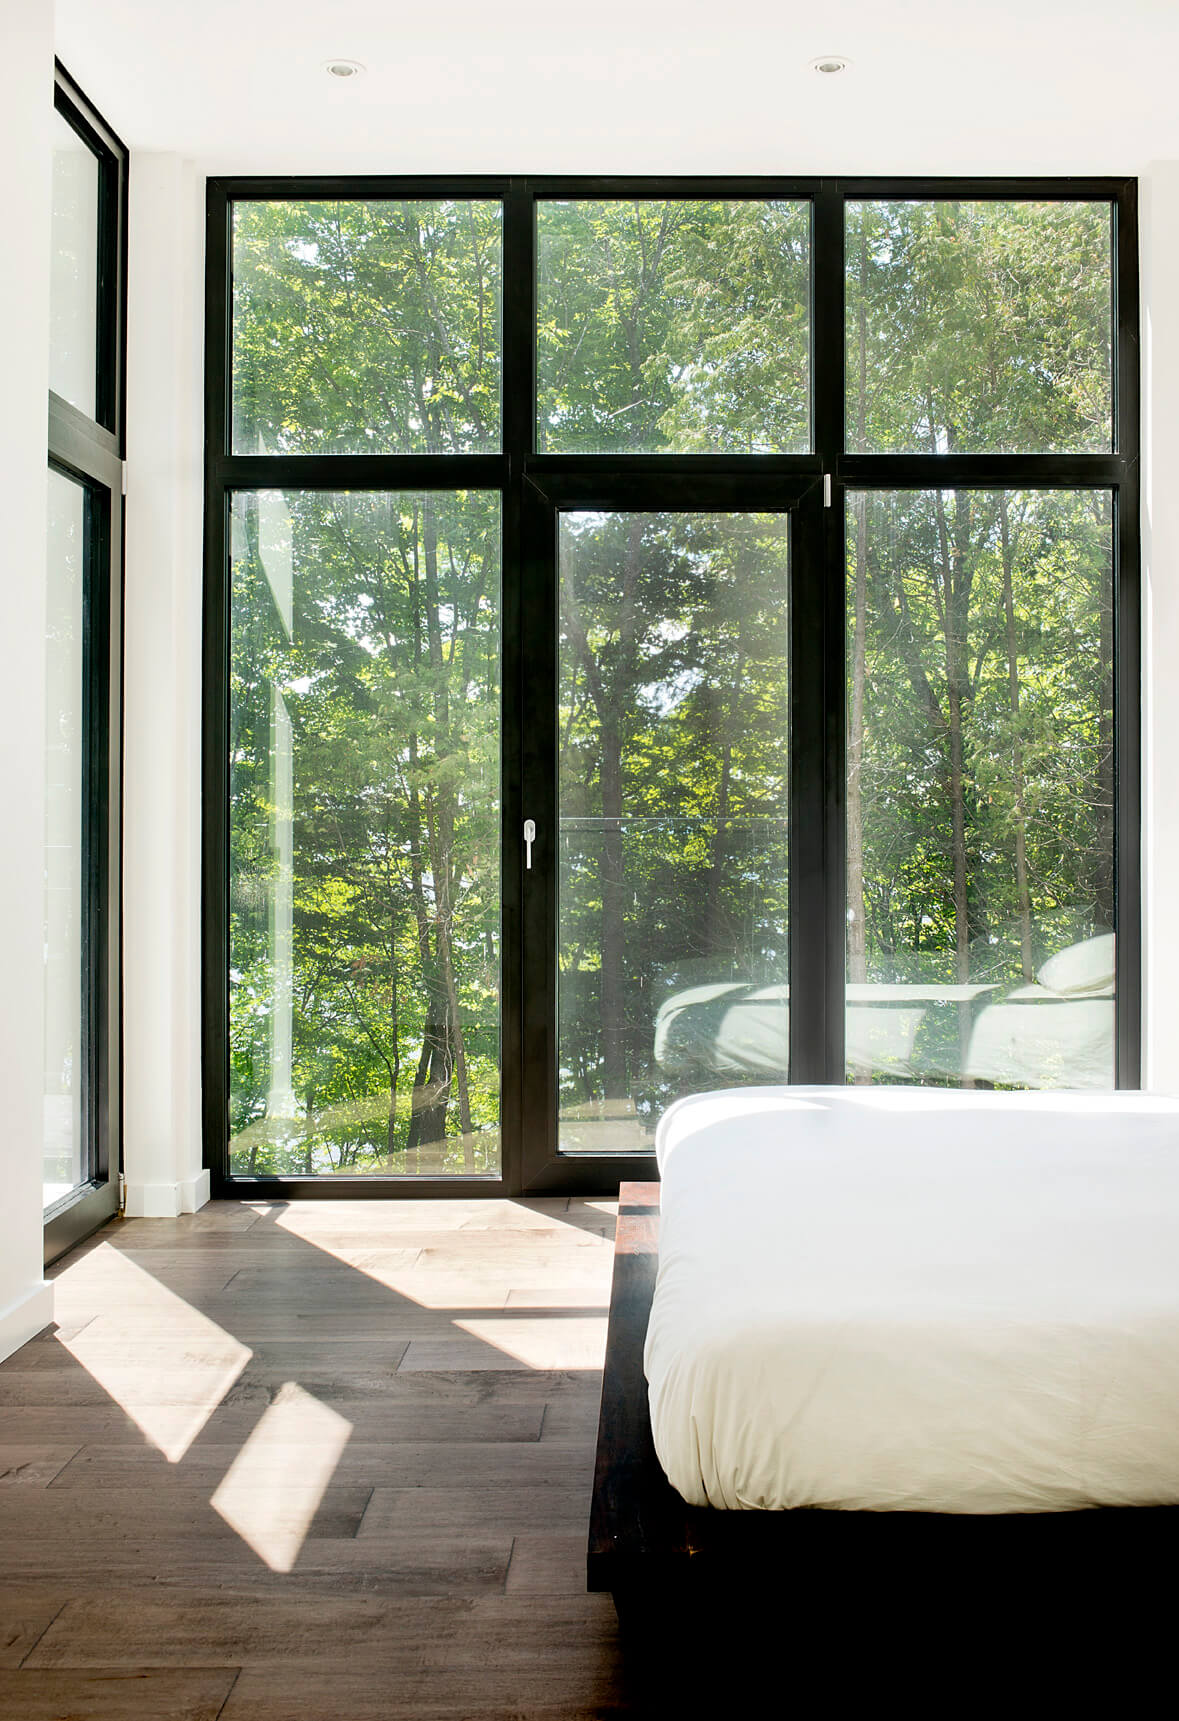 On the top floor, the primary bedroom enjoys expansive views of the surrounding forest and lake beyond.